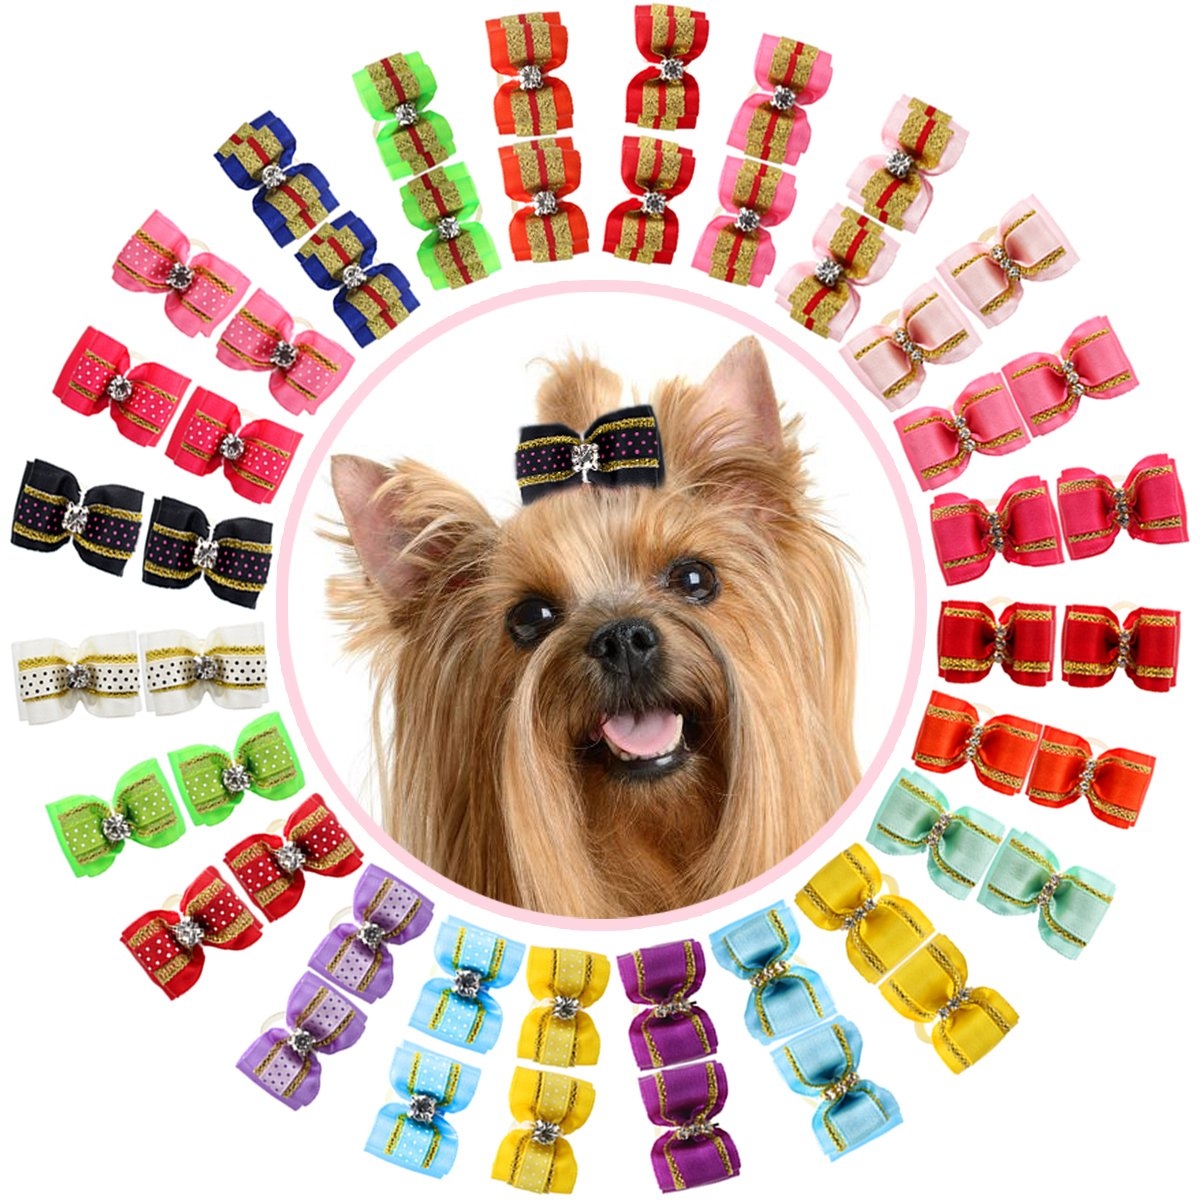 Doggy Kitty Topknot Grooming Accessories Set for Long Hair Puppy Cat YOY Adorable Grosgrain Ribbon Pet Dog Hair Bows with Elastic Rubber Bands